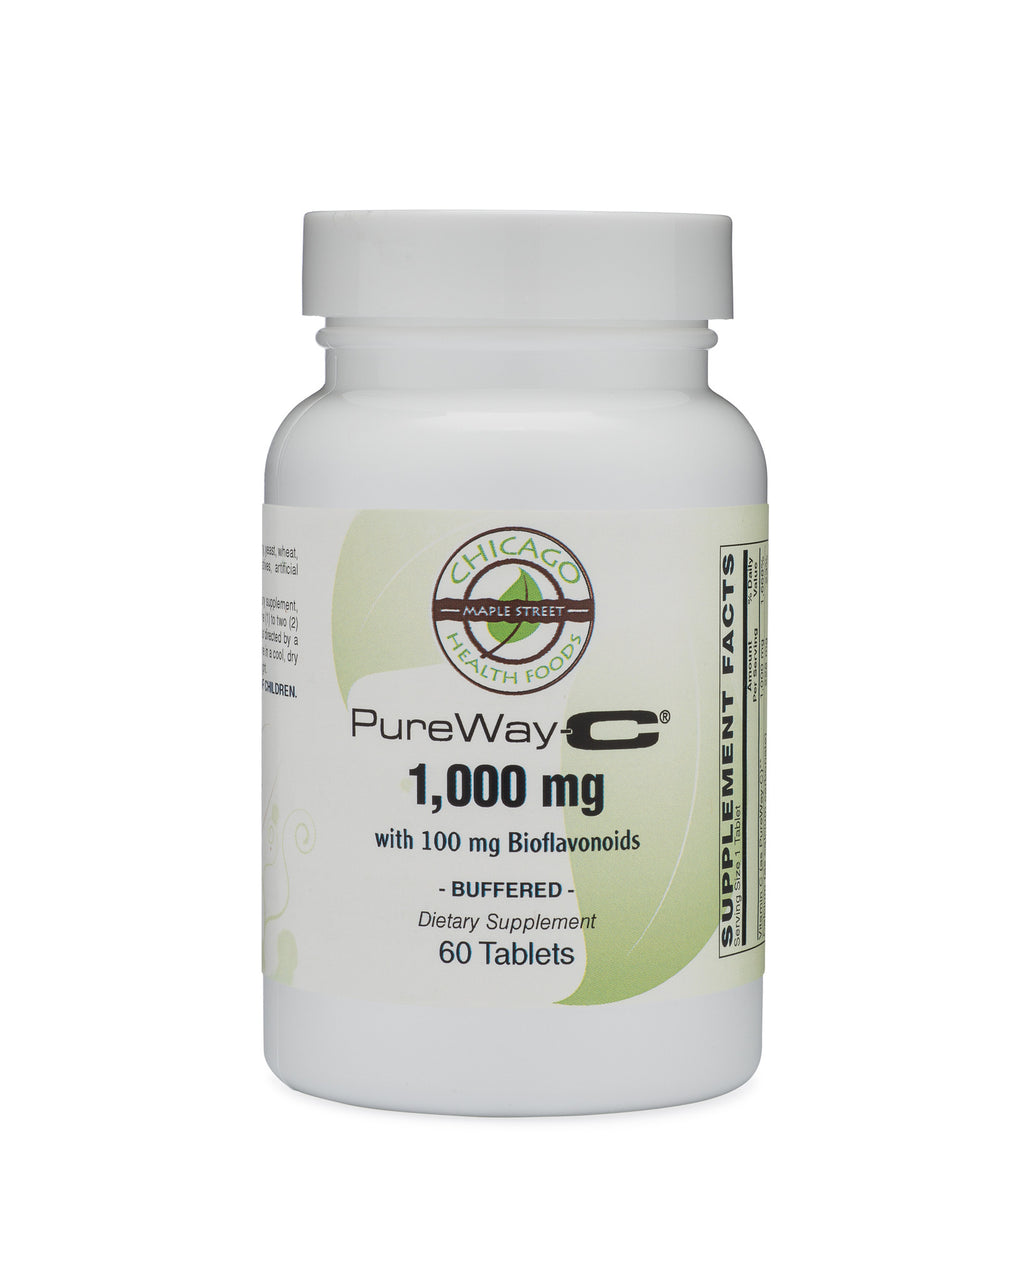 Vitamin C 1,000mg buffered 100mg bioflavonoids 60 tablets chicago health